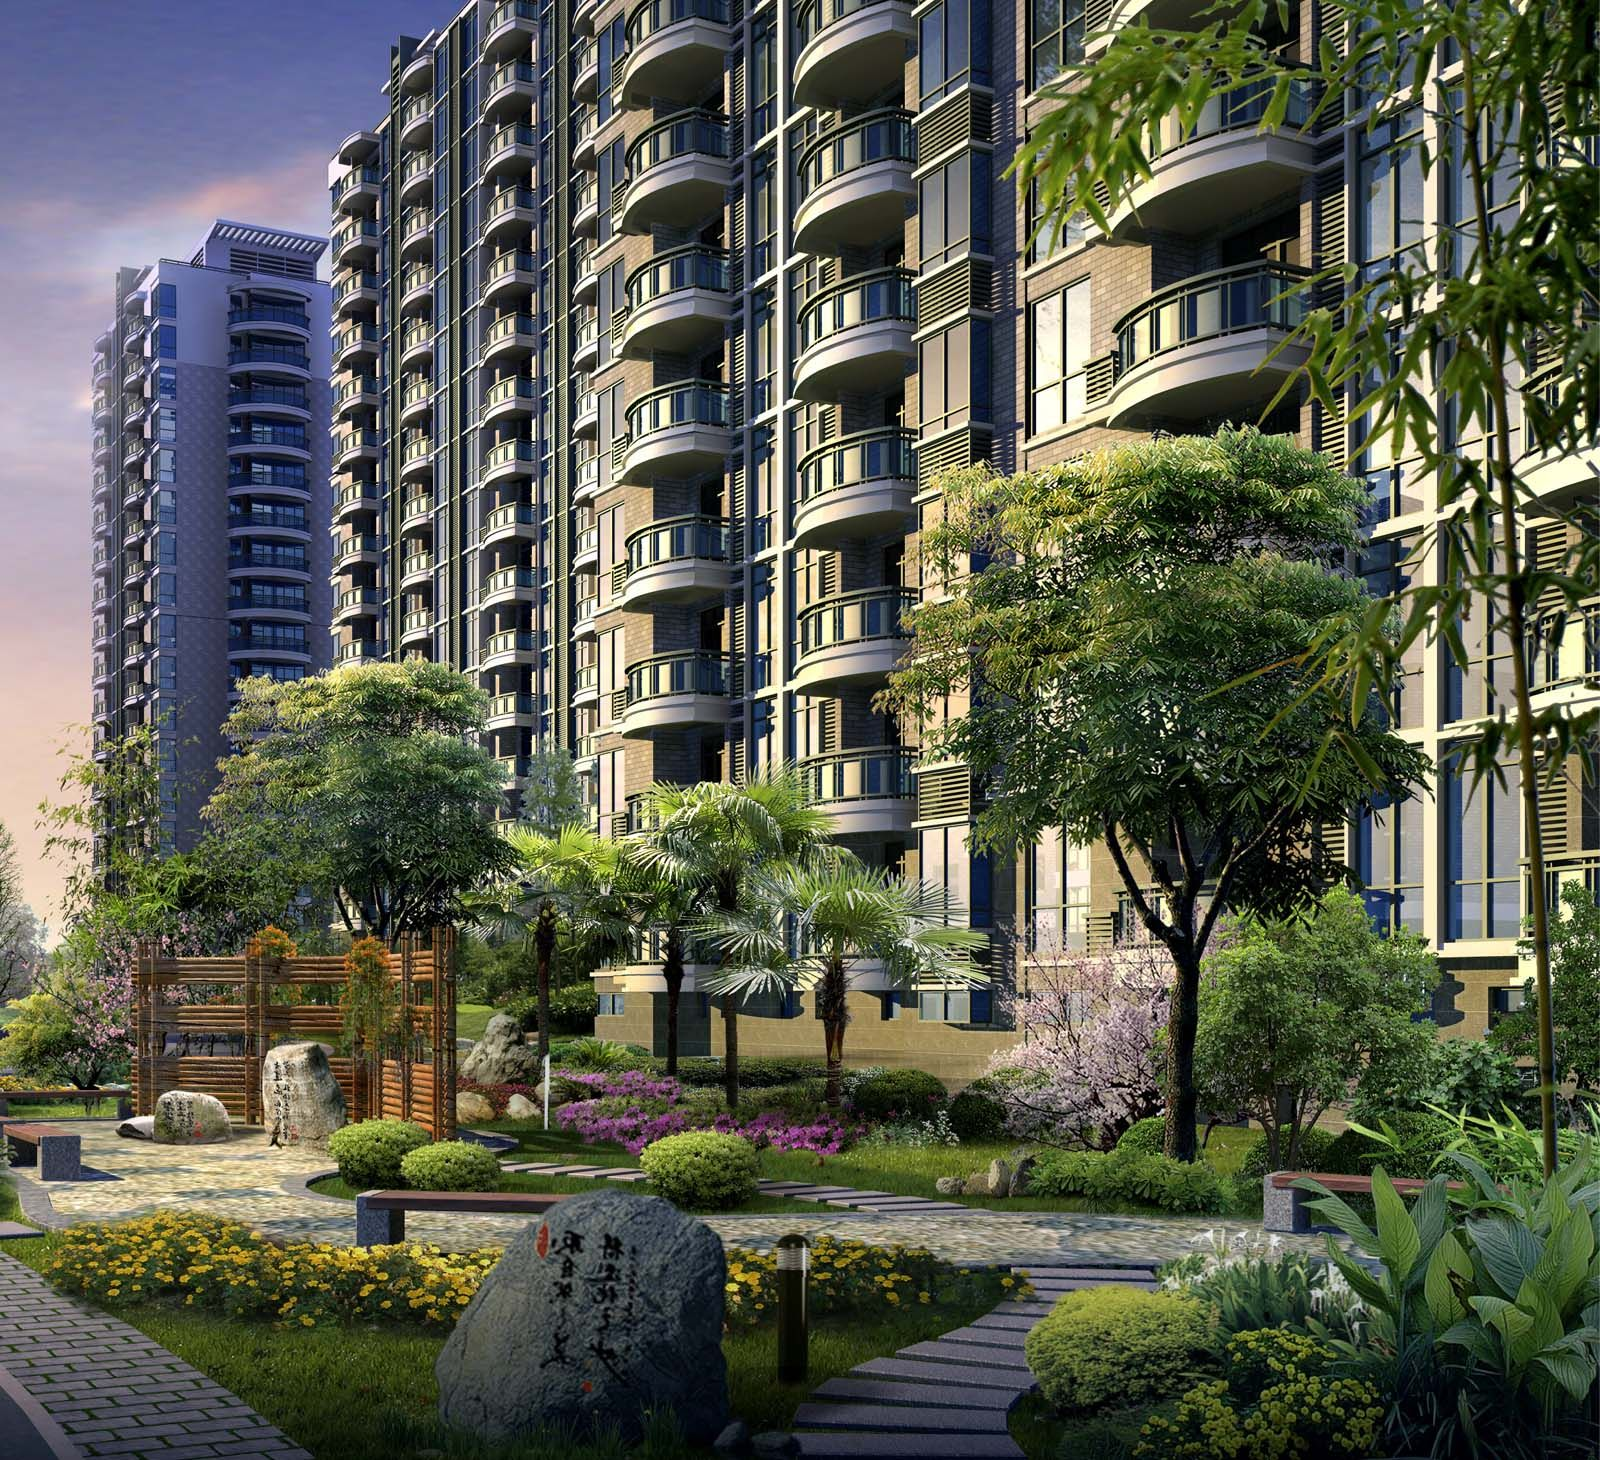 Logix Blossom County Noida Group Brings 2 3 4 Bhk Apartments With